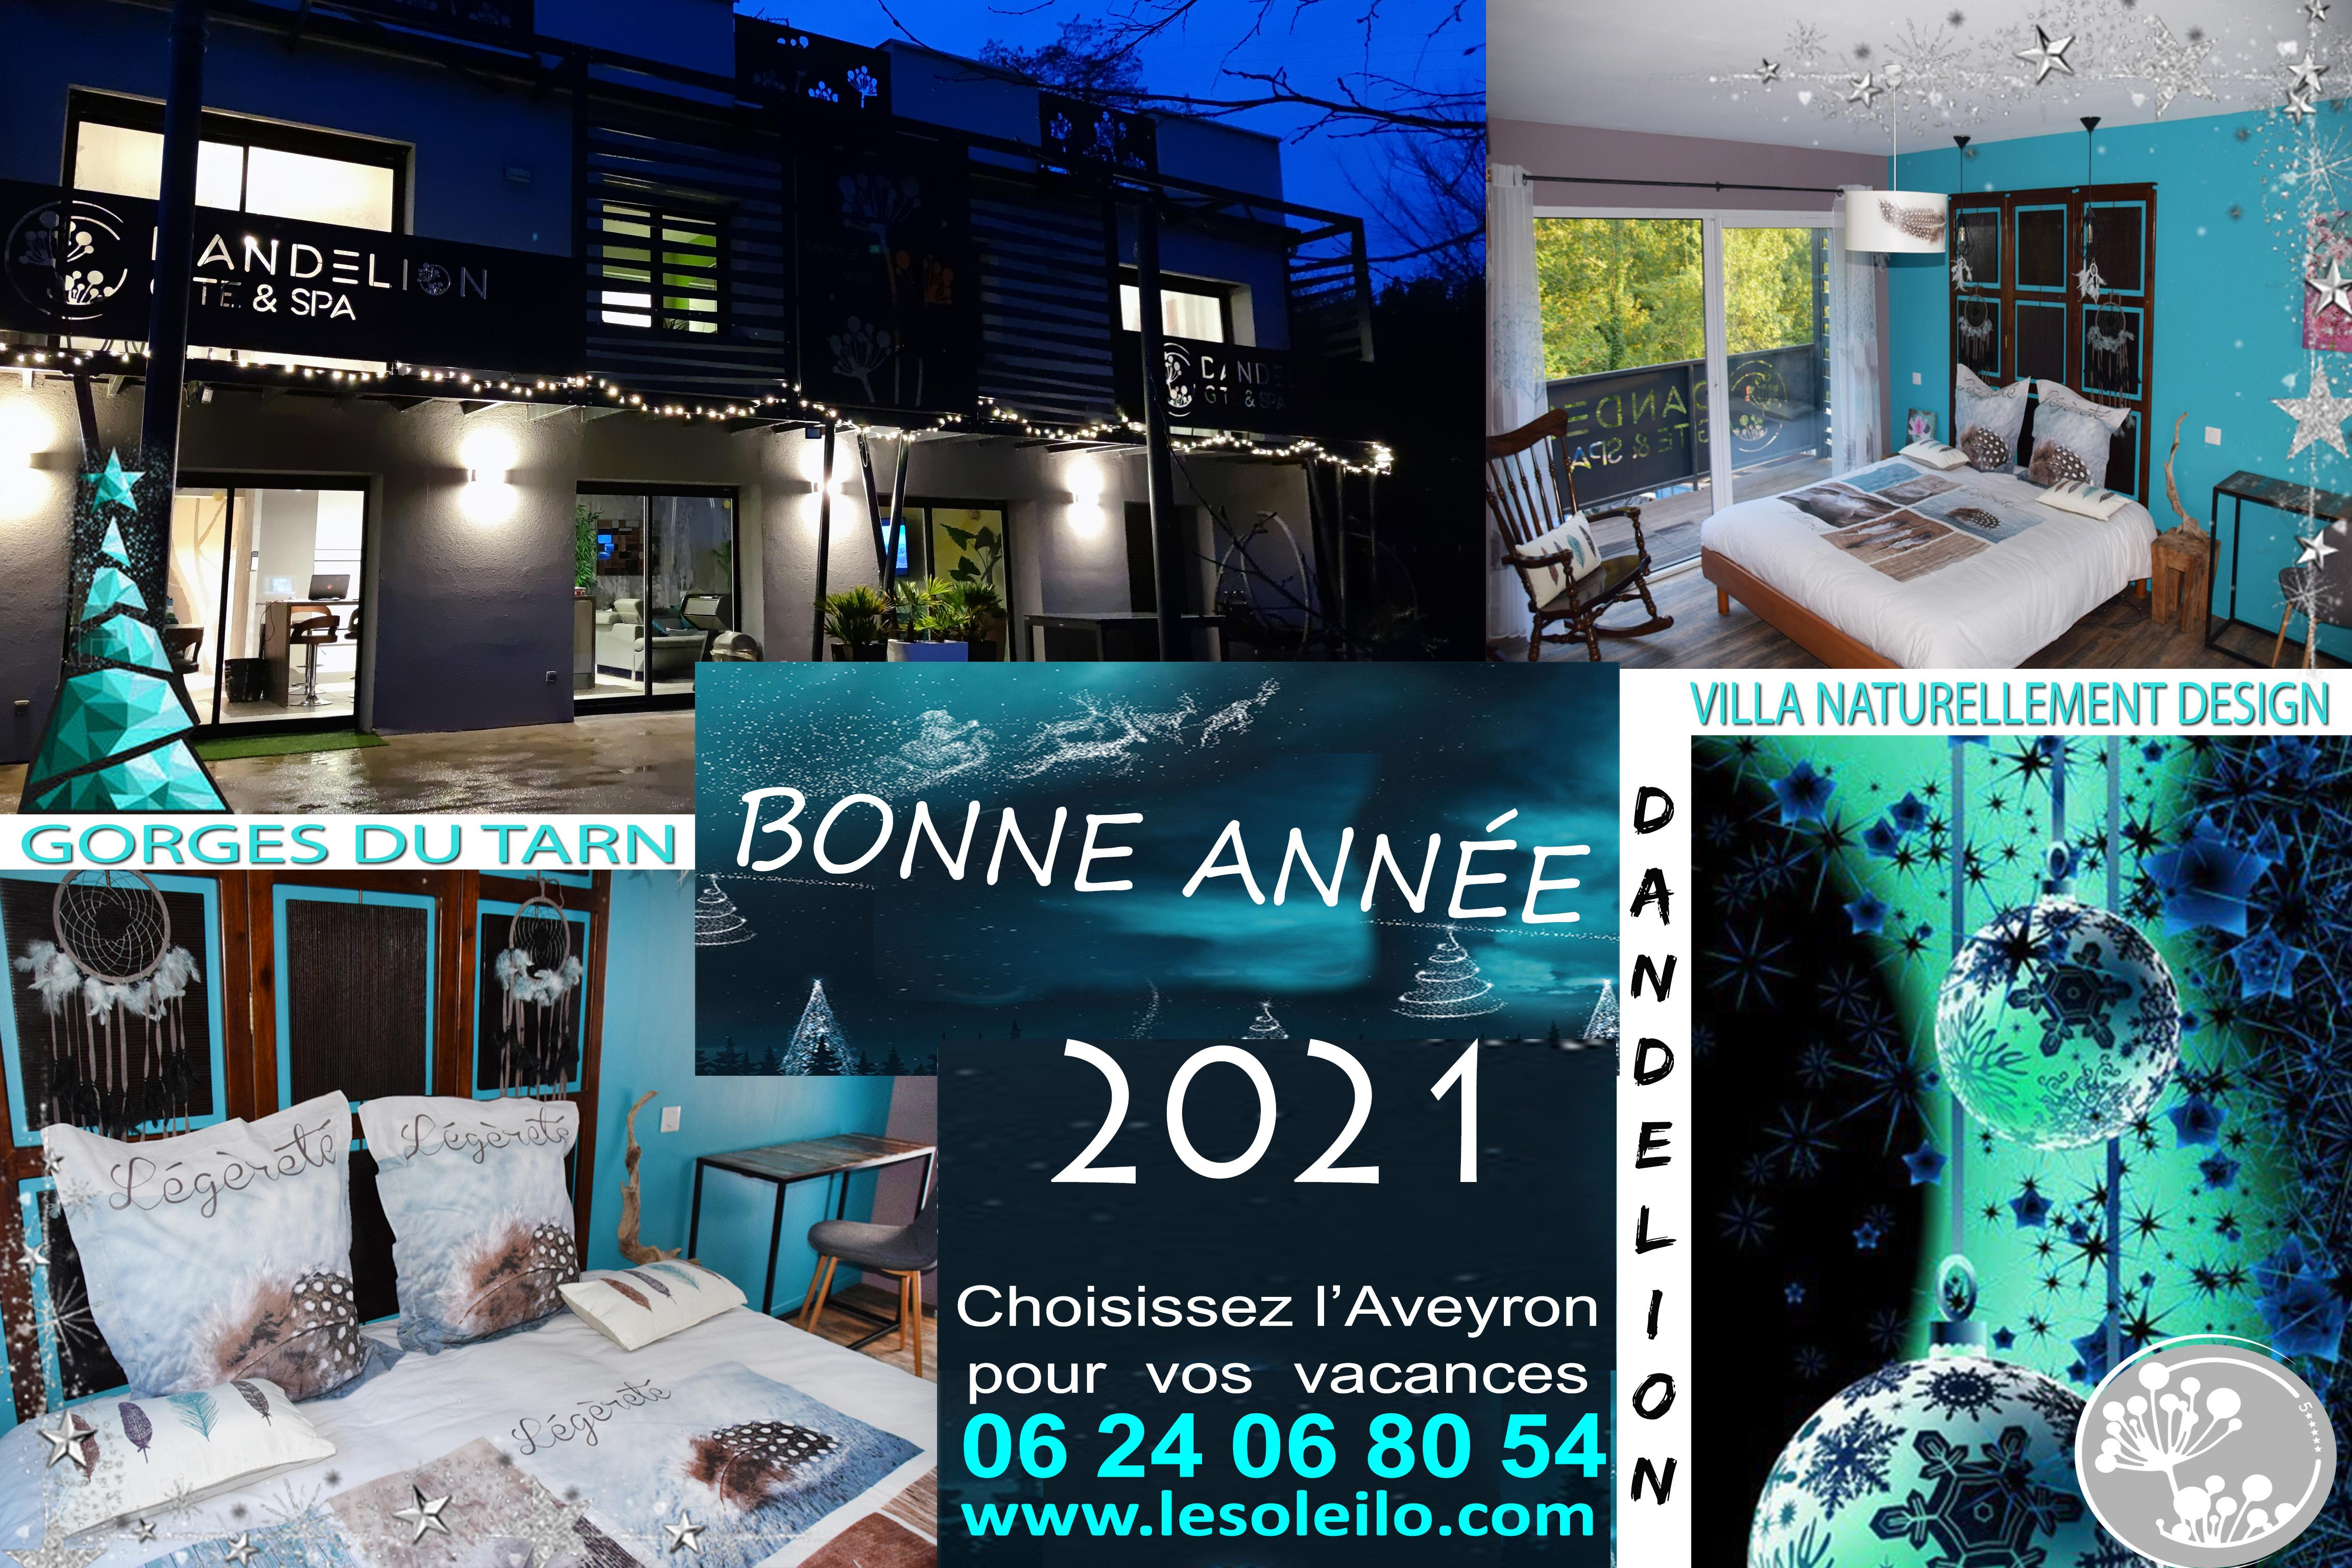 wishes 2021 Dandelion cottage with swimming pool jacuzzi and Aqua Soleil Eau canoeing Tarn Gorges